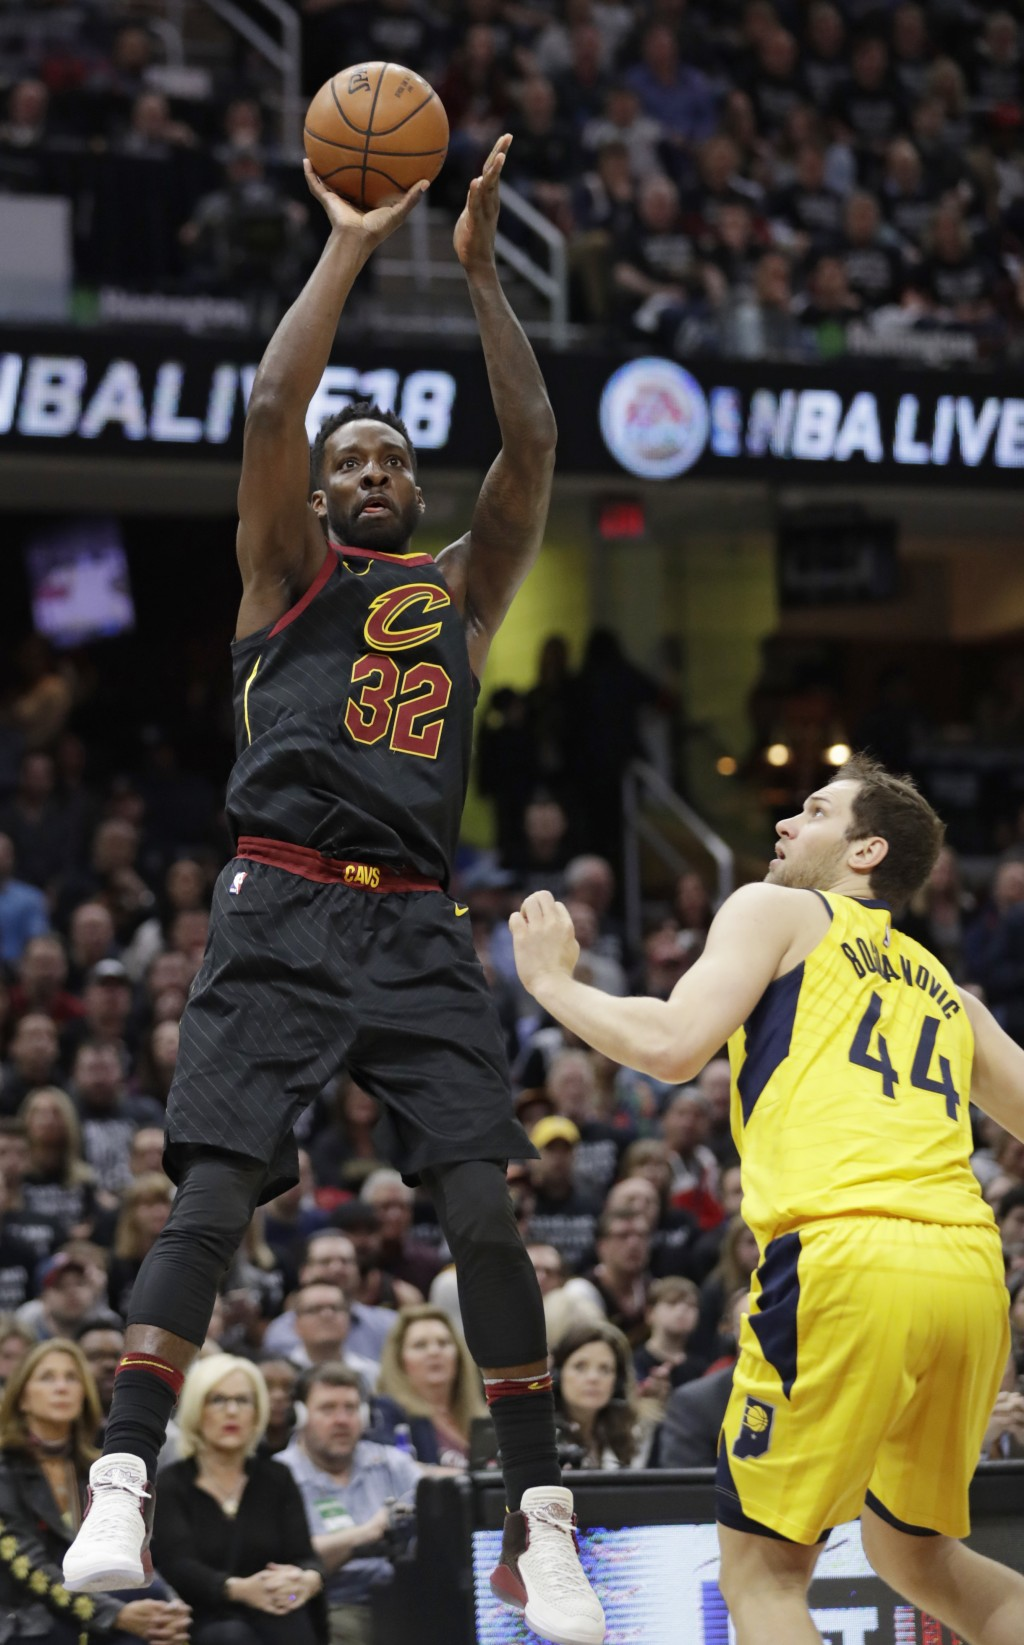 Cleveland Cavaliers' Jeff Green (32) shoots over Indiana Pacers' Bojan Bogdanovic (44), from Croatia, in the first half of Game 7 of an NBA basketball...